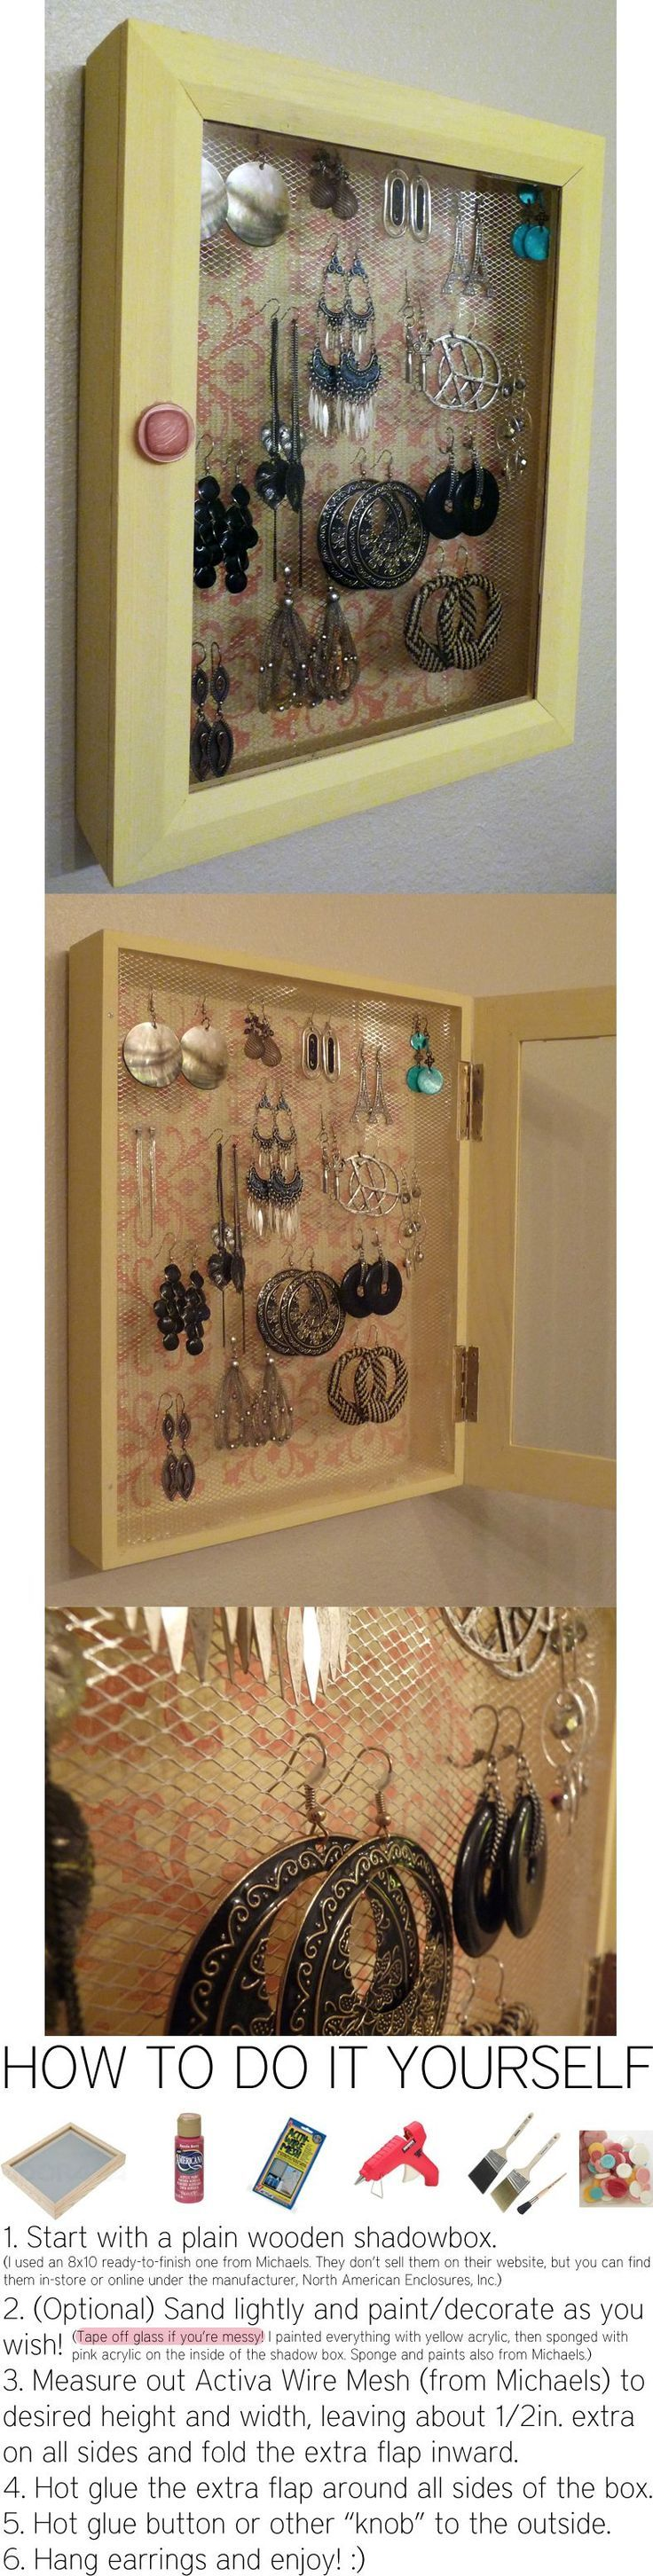 best clever ideas for home organization images on pinterest